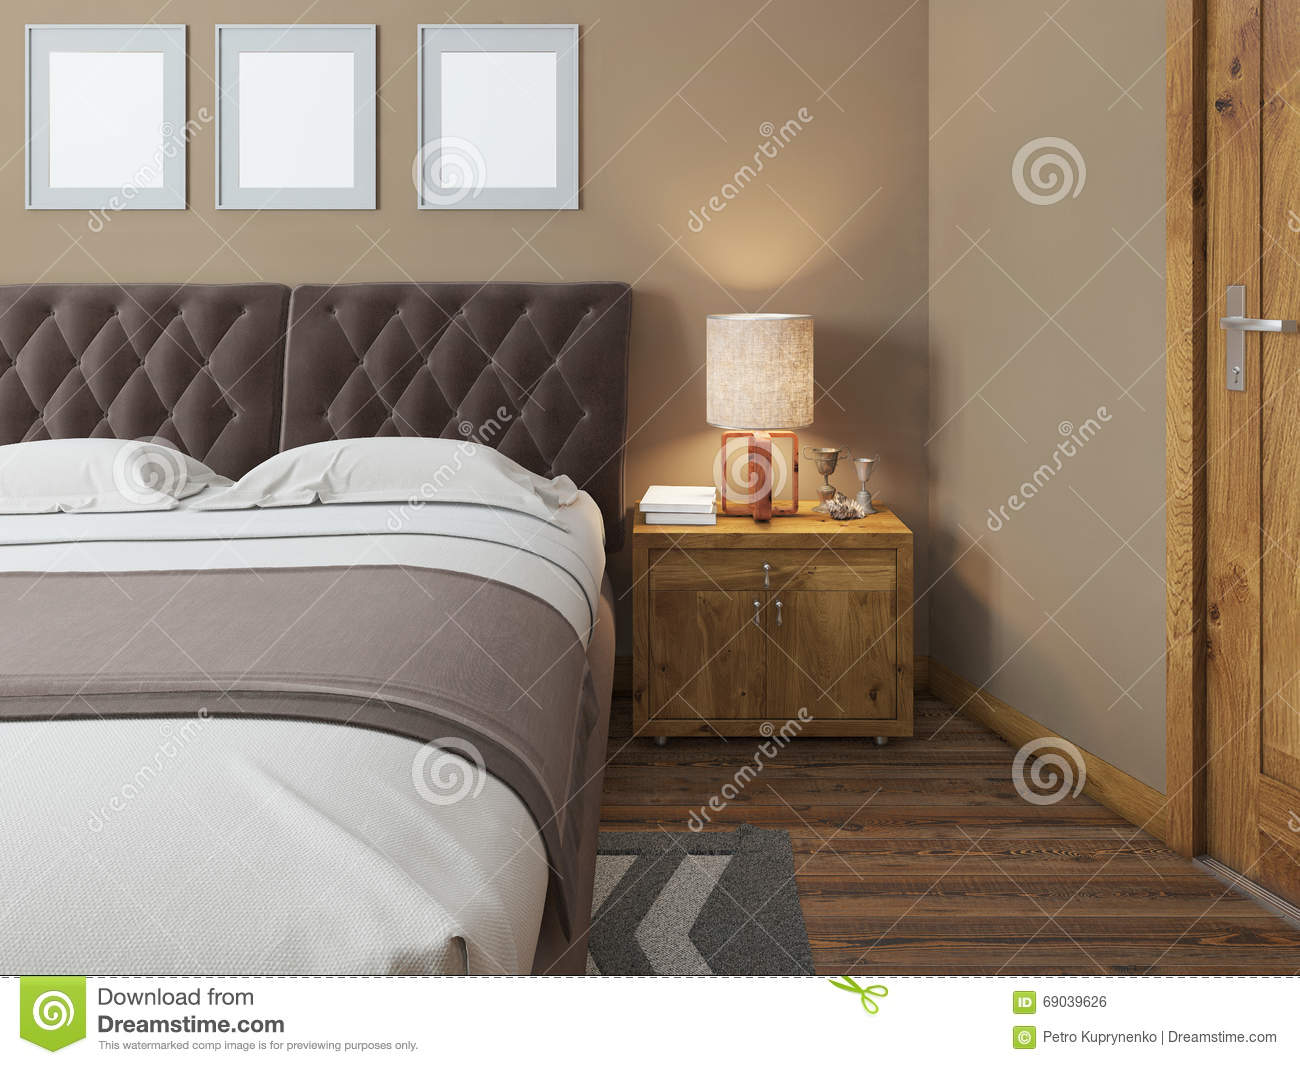 Wooden Bedside Tables With Expressive Textures In A Modern Bedroom Stock Illustration Illustration Of Beautiful Decor 69039626